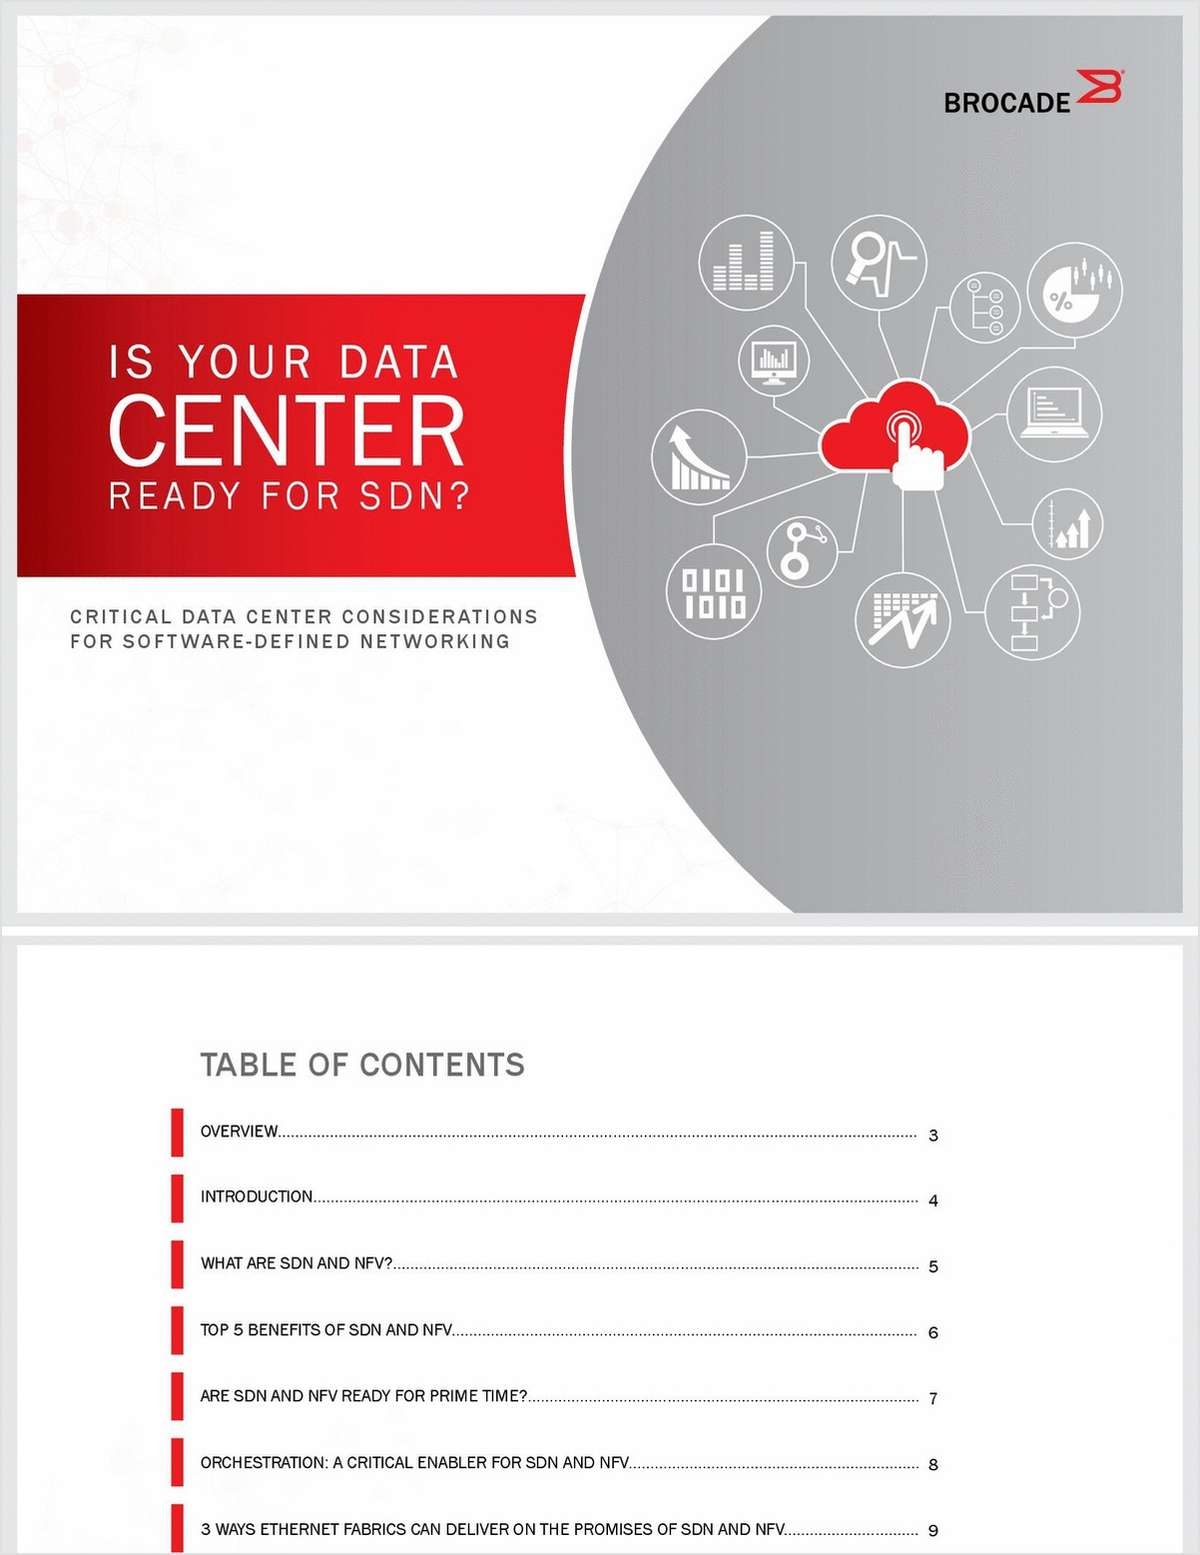 Is Your Data Center Ready for SDN?